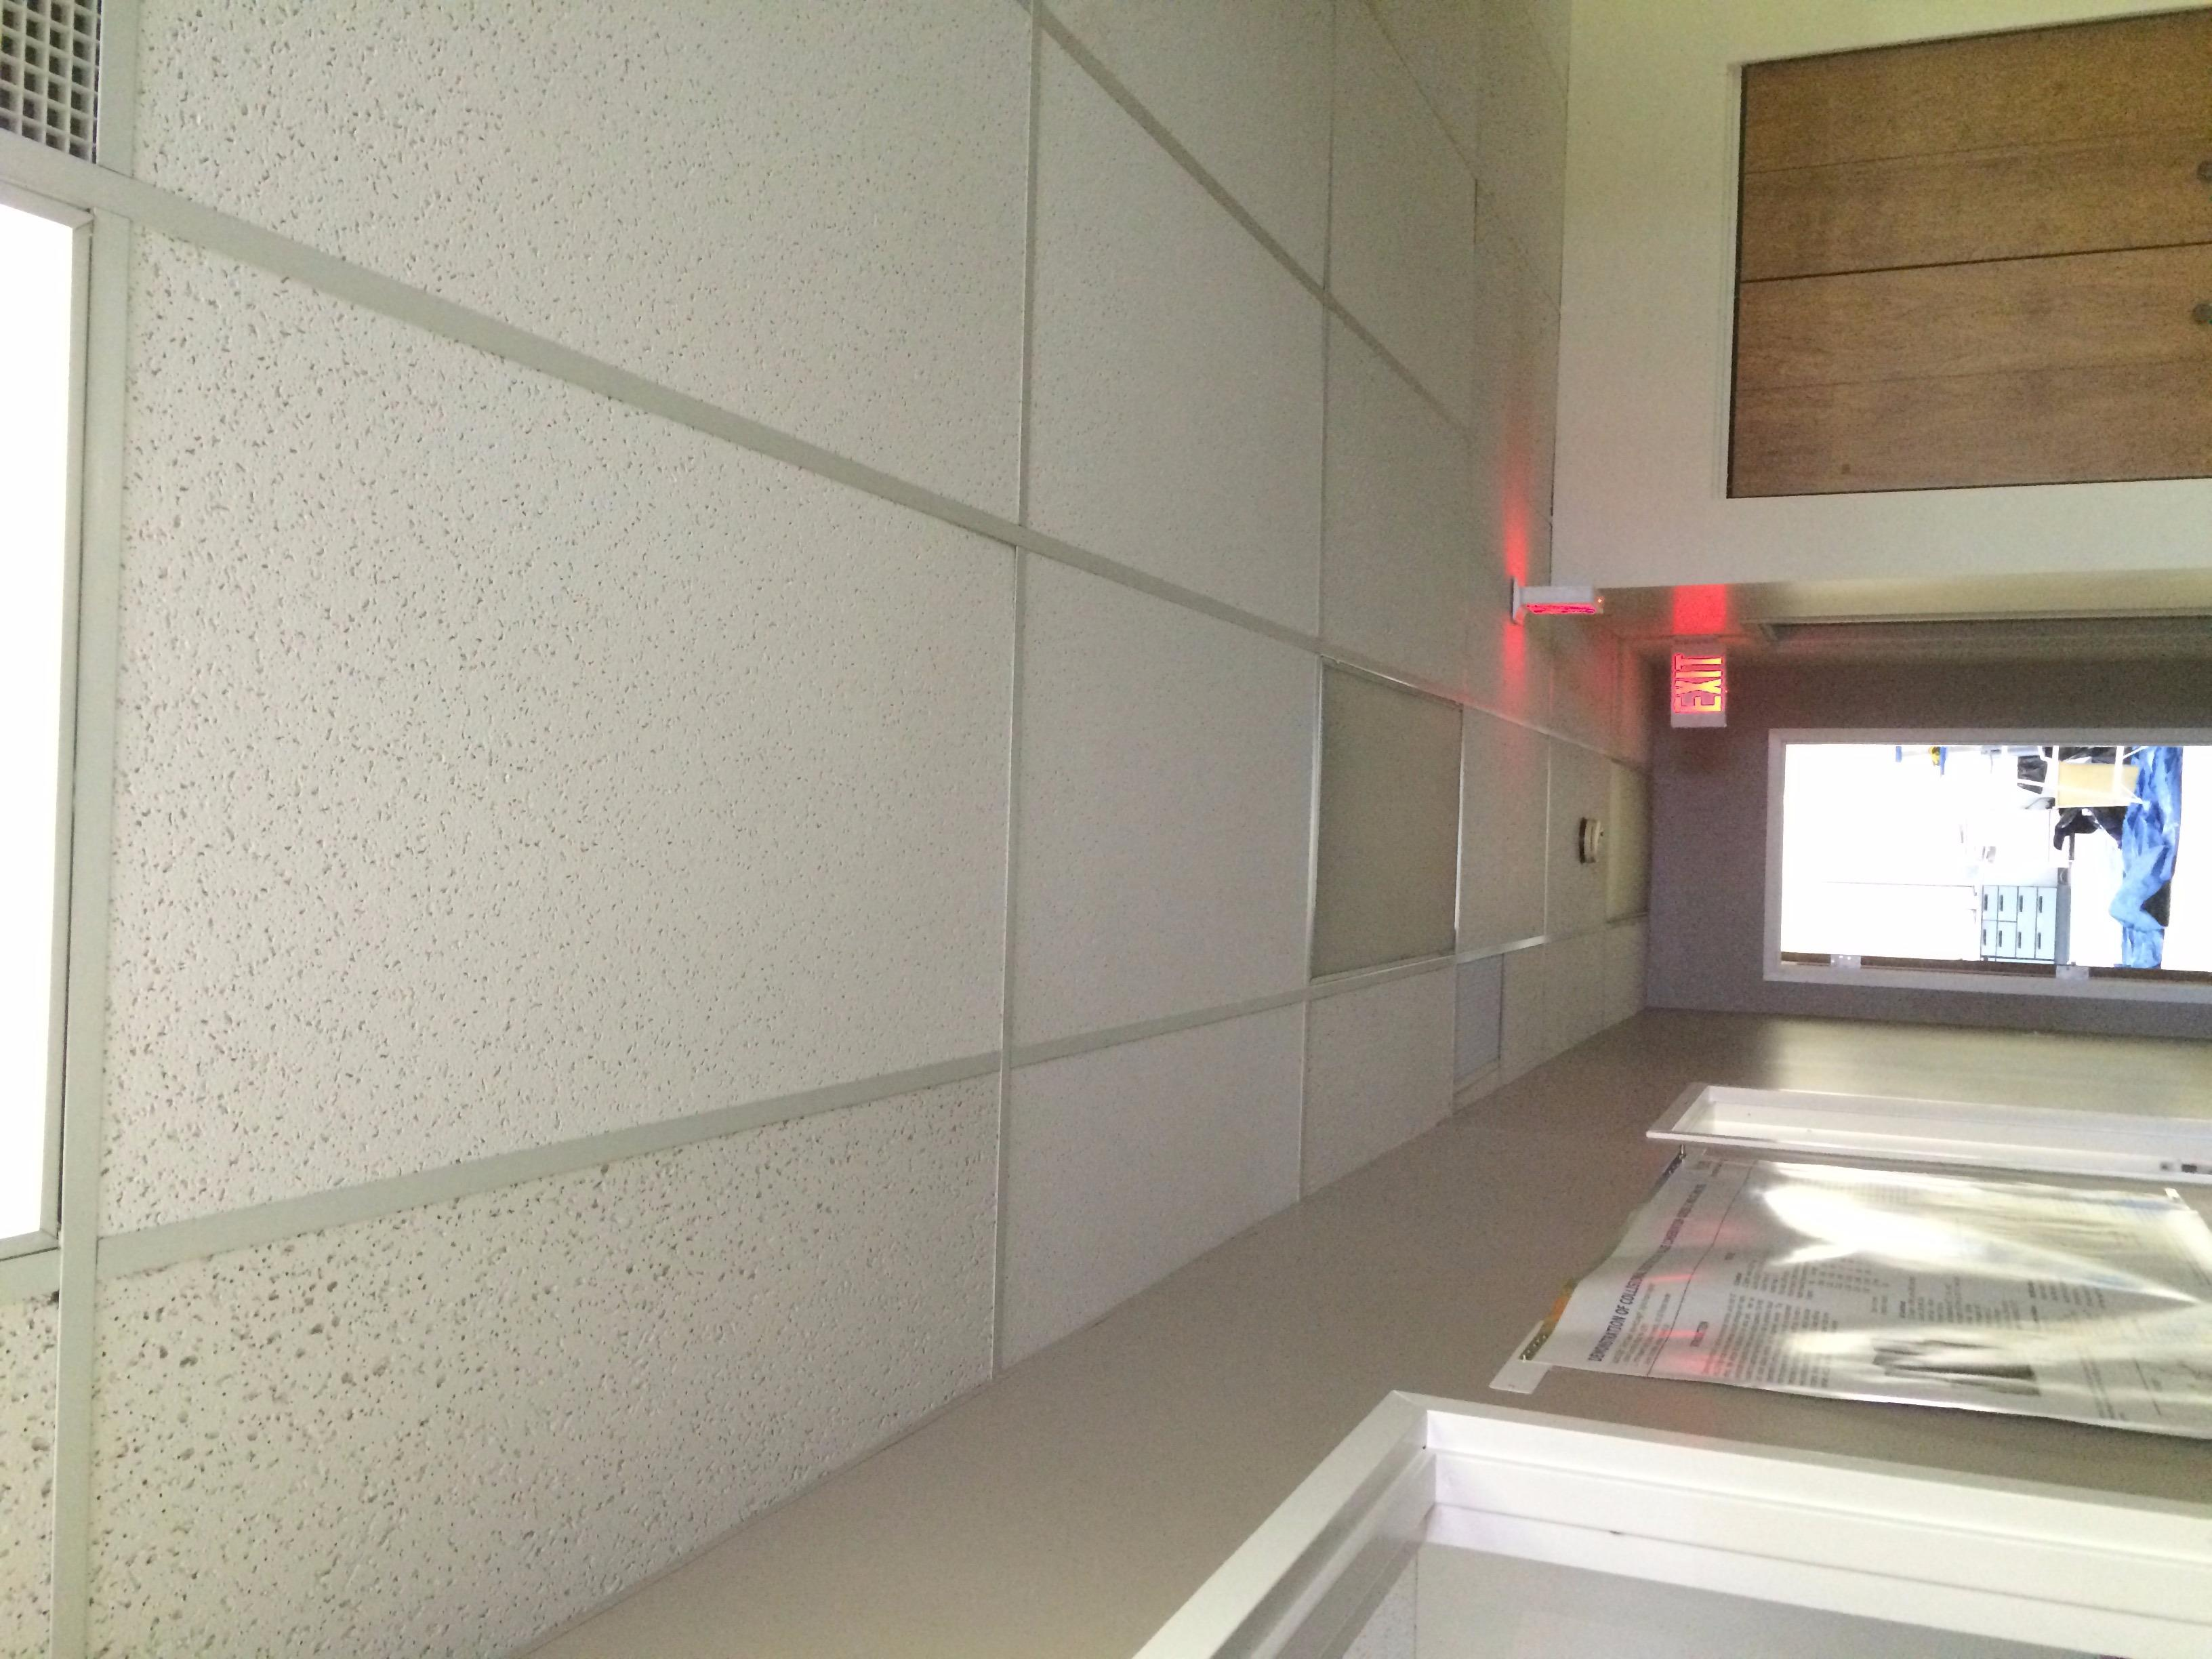 Ceiling tile replacement